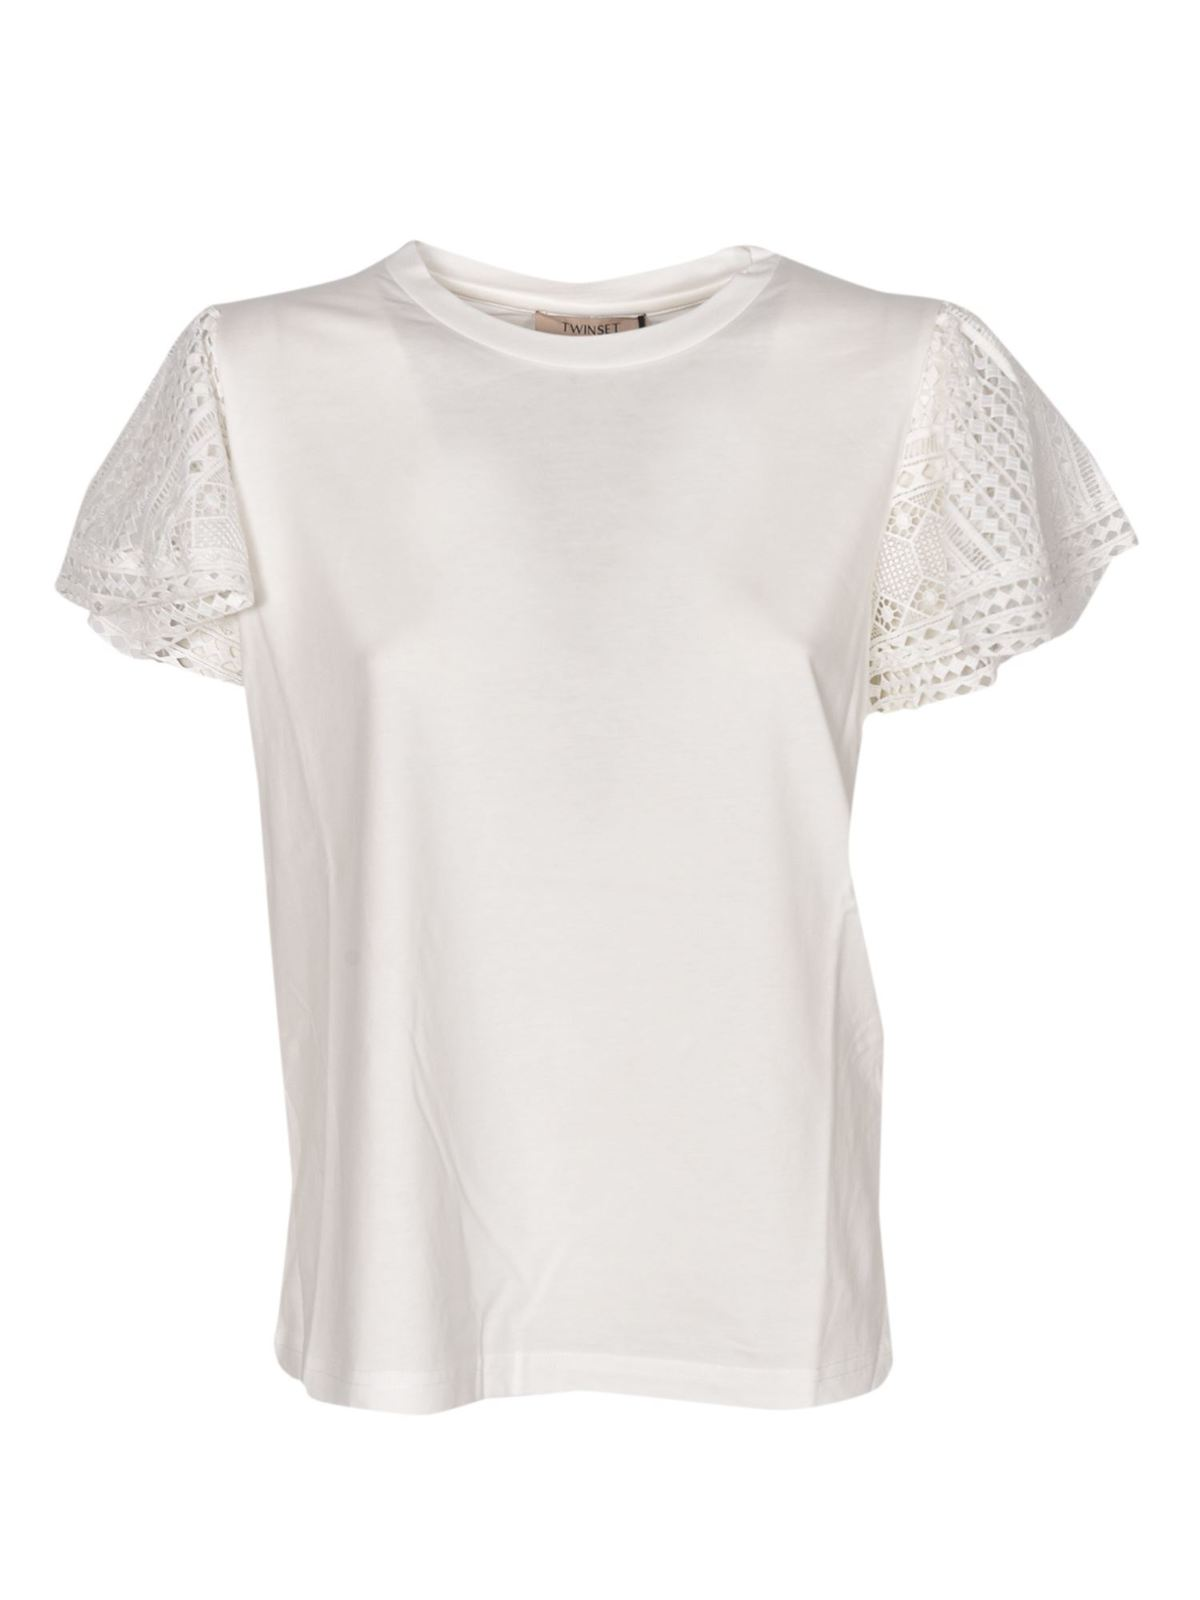 Twinset LACE SLEEVES T-SHIRT IN WHITE